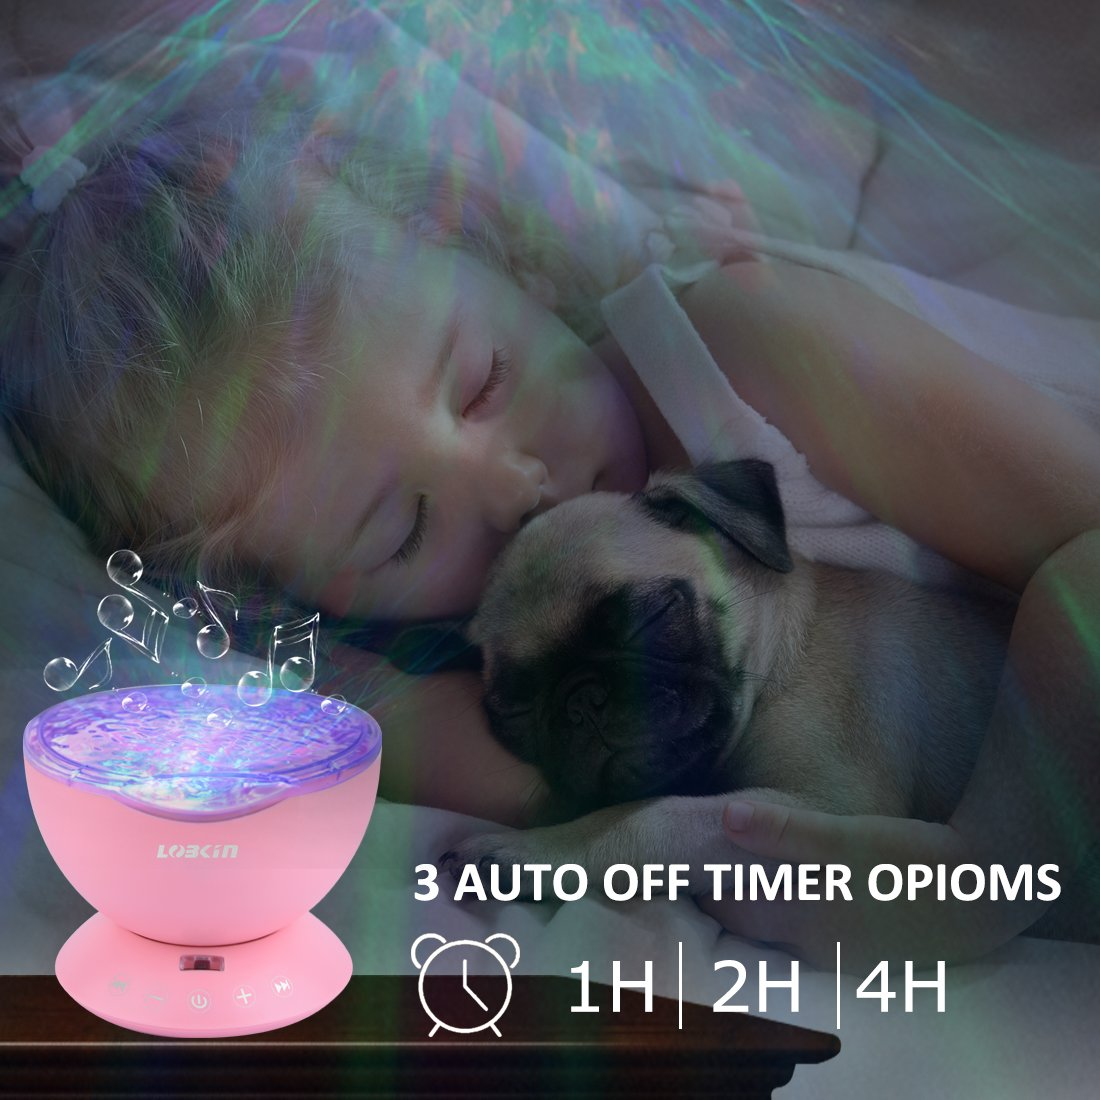 [Upgraded Model] Lobkin Remote Control Ocean Wave Projector ,Aurora Night Light Projector with Build-in Speaker, Mood Light for Baby Nursery, Adults and Kids Bedroom, Living Room (Pink)